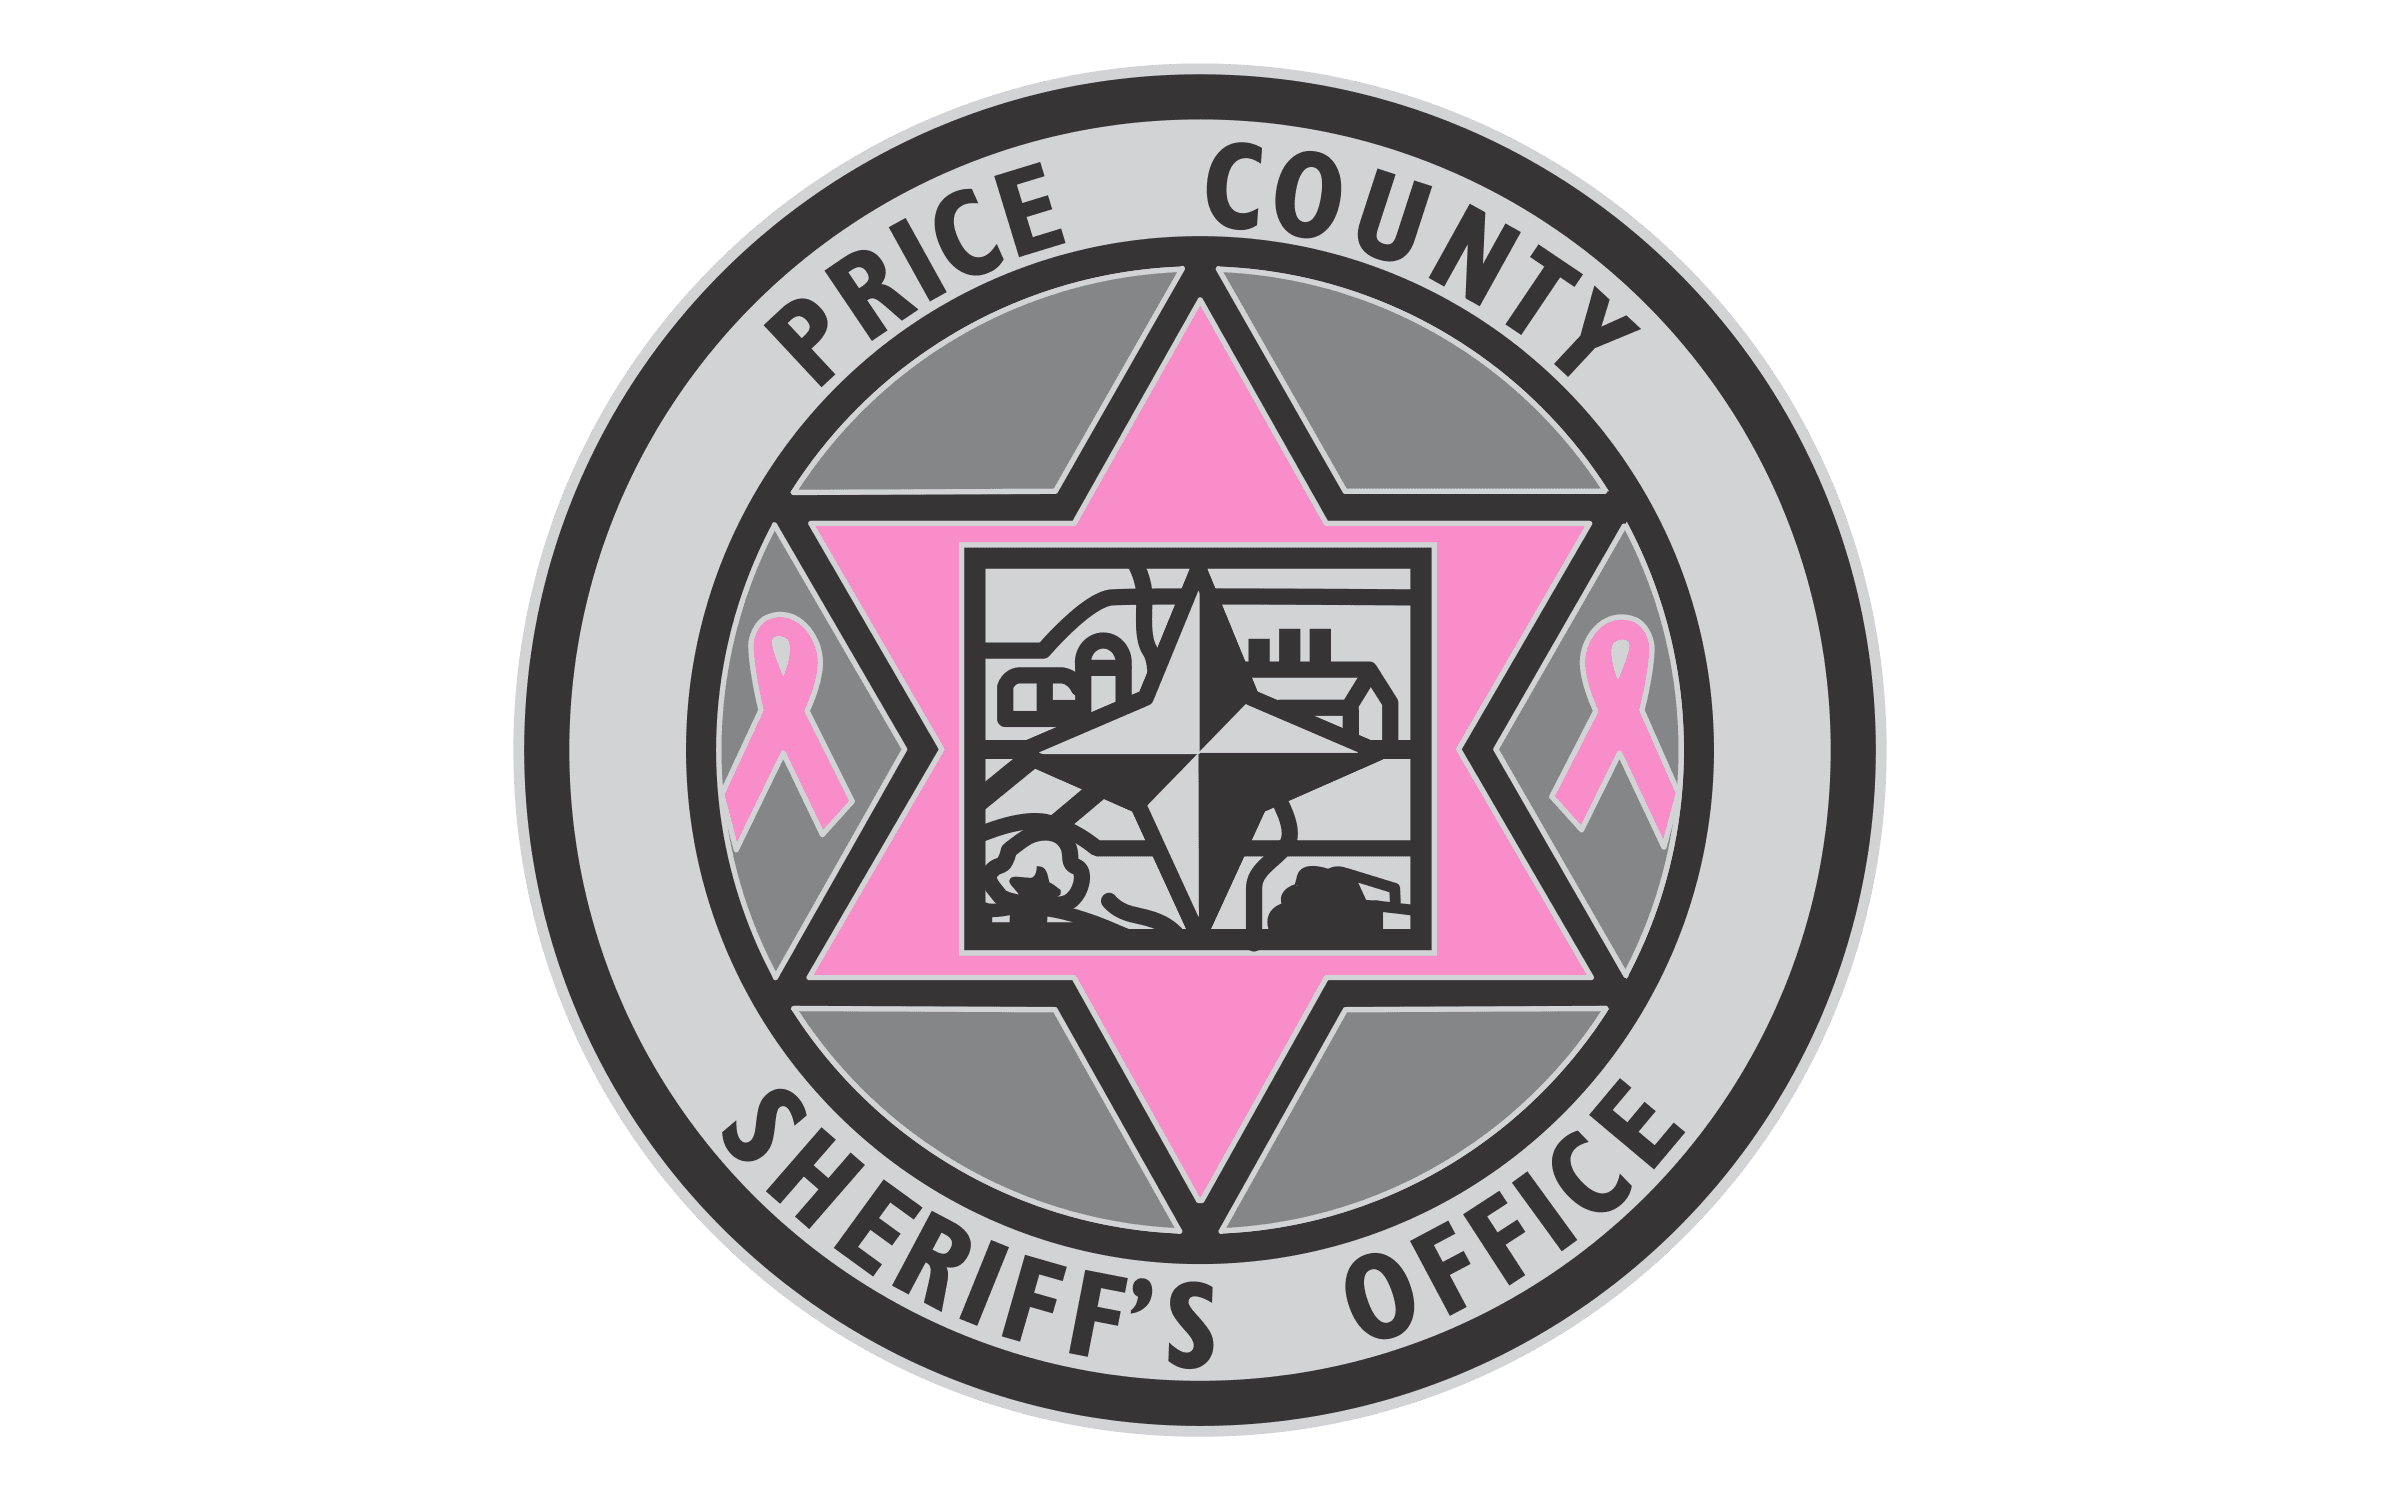 Price County Sheriff (WI) - PINK Pin 2017